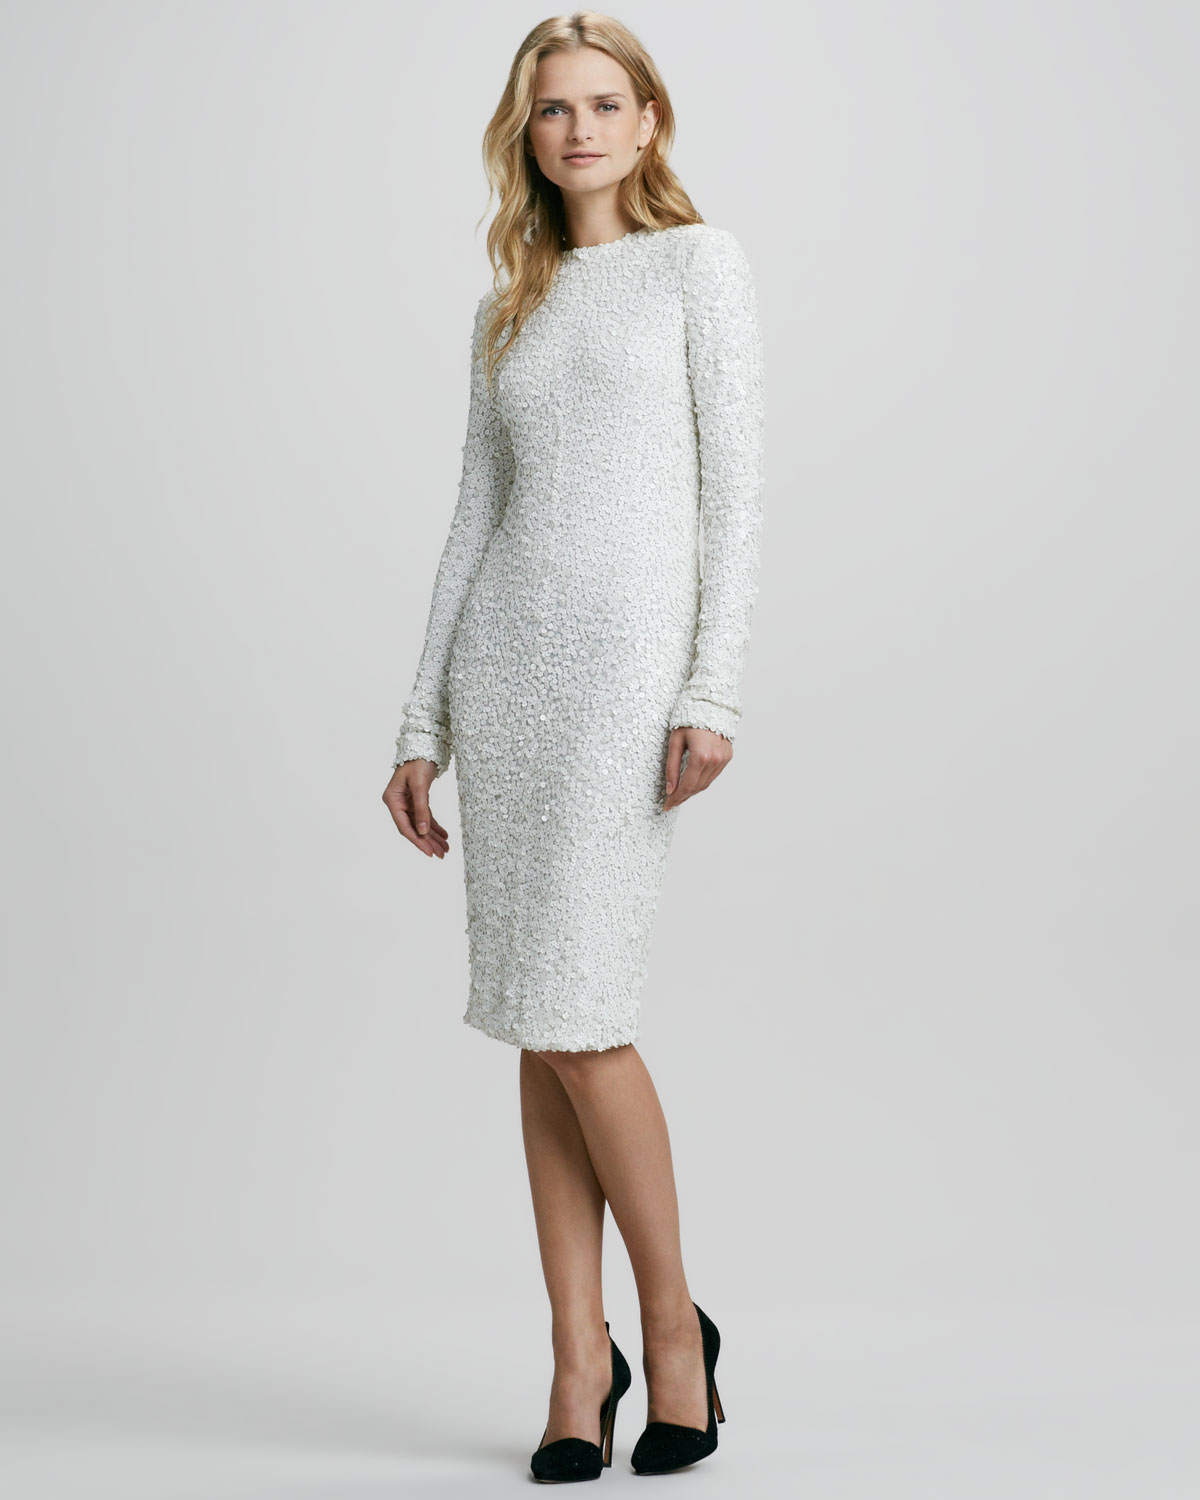 Rachel zoe Adrienne Fitted Sequined Dress in White | Lyst